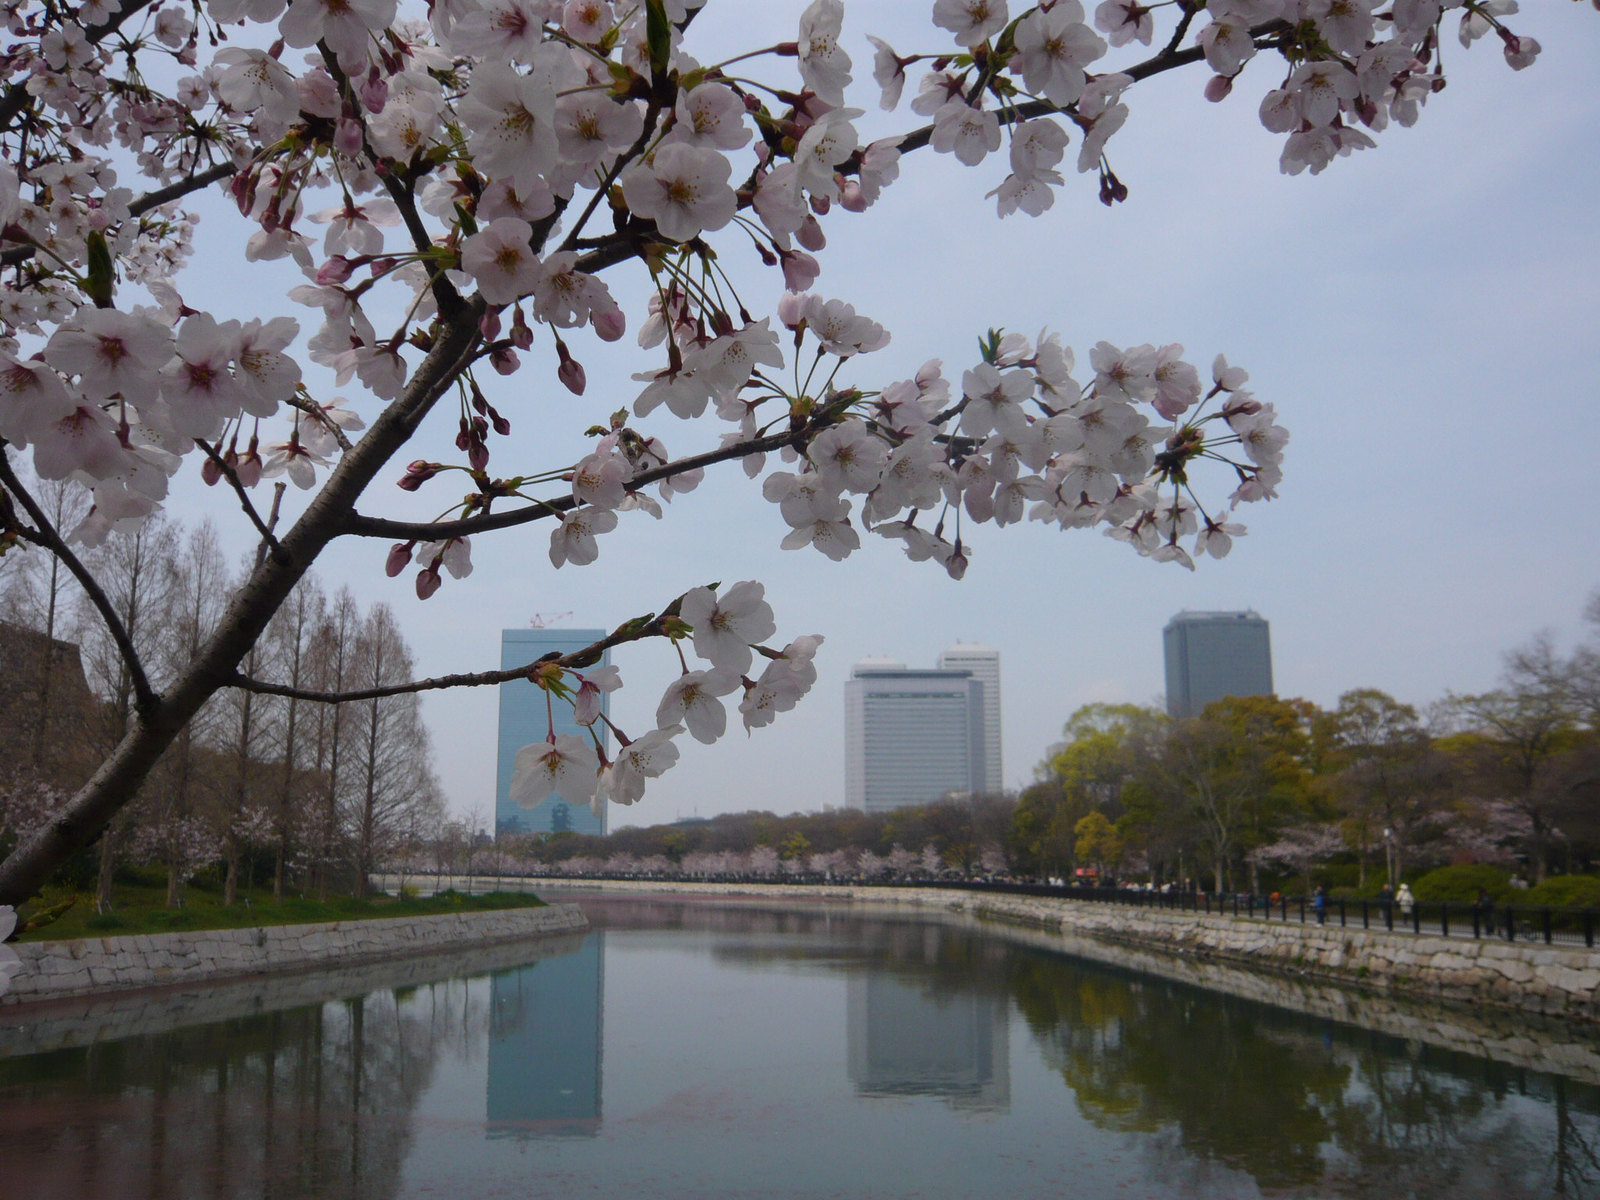 River_and_cherry_blossoms